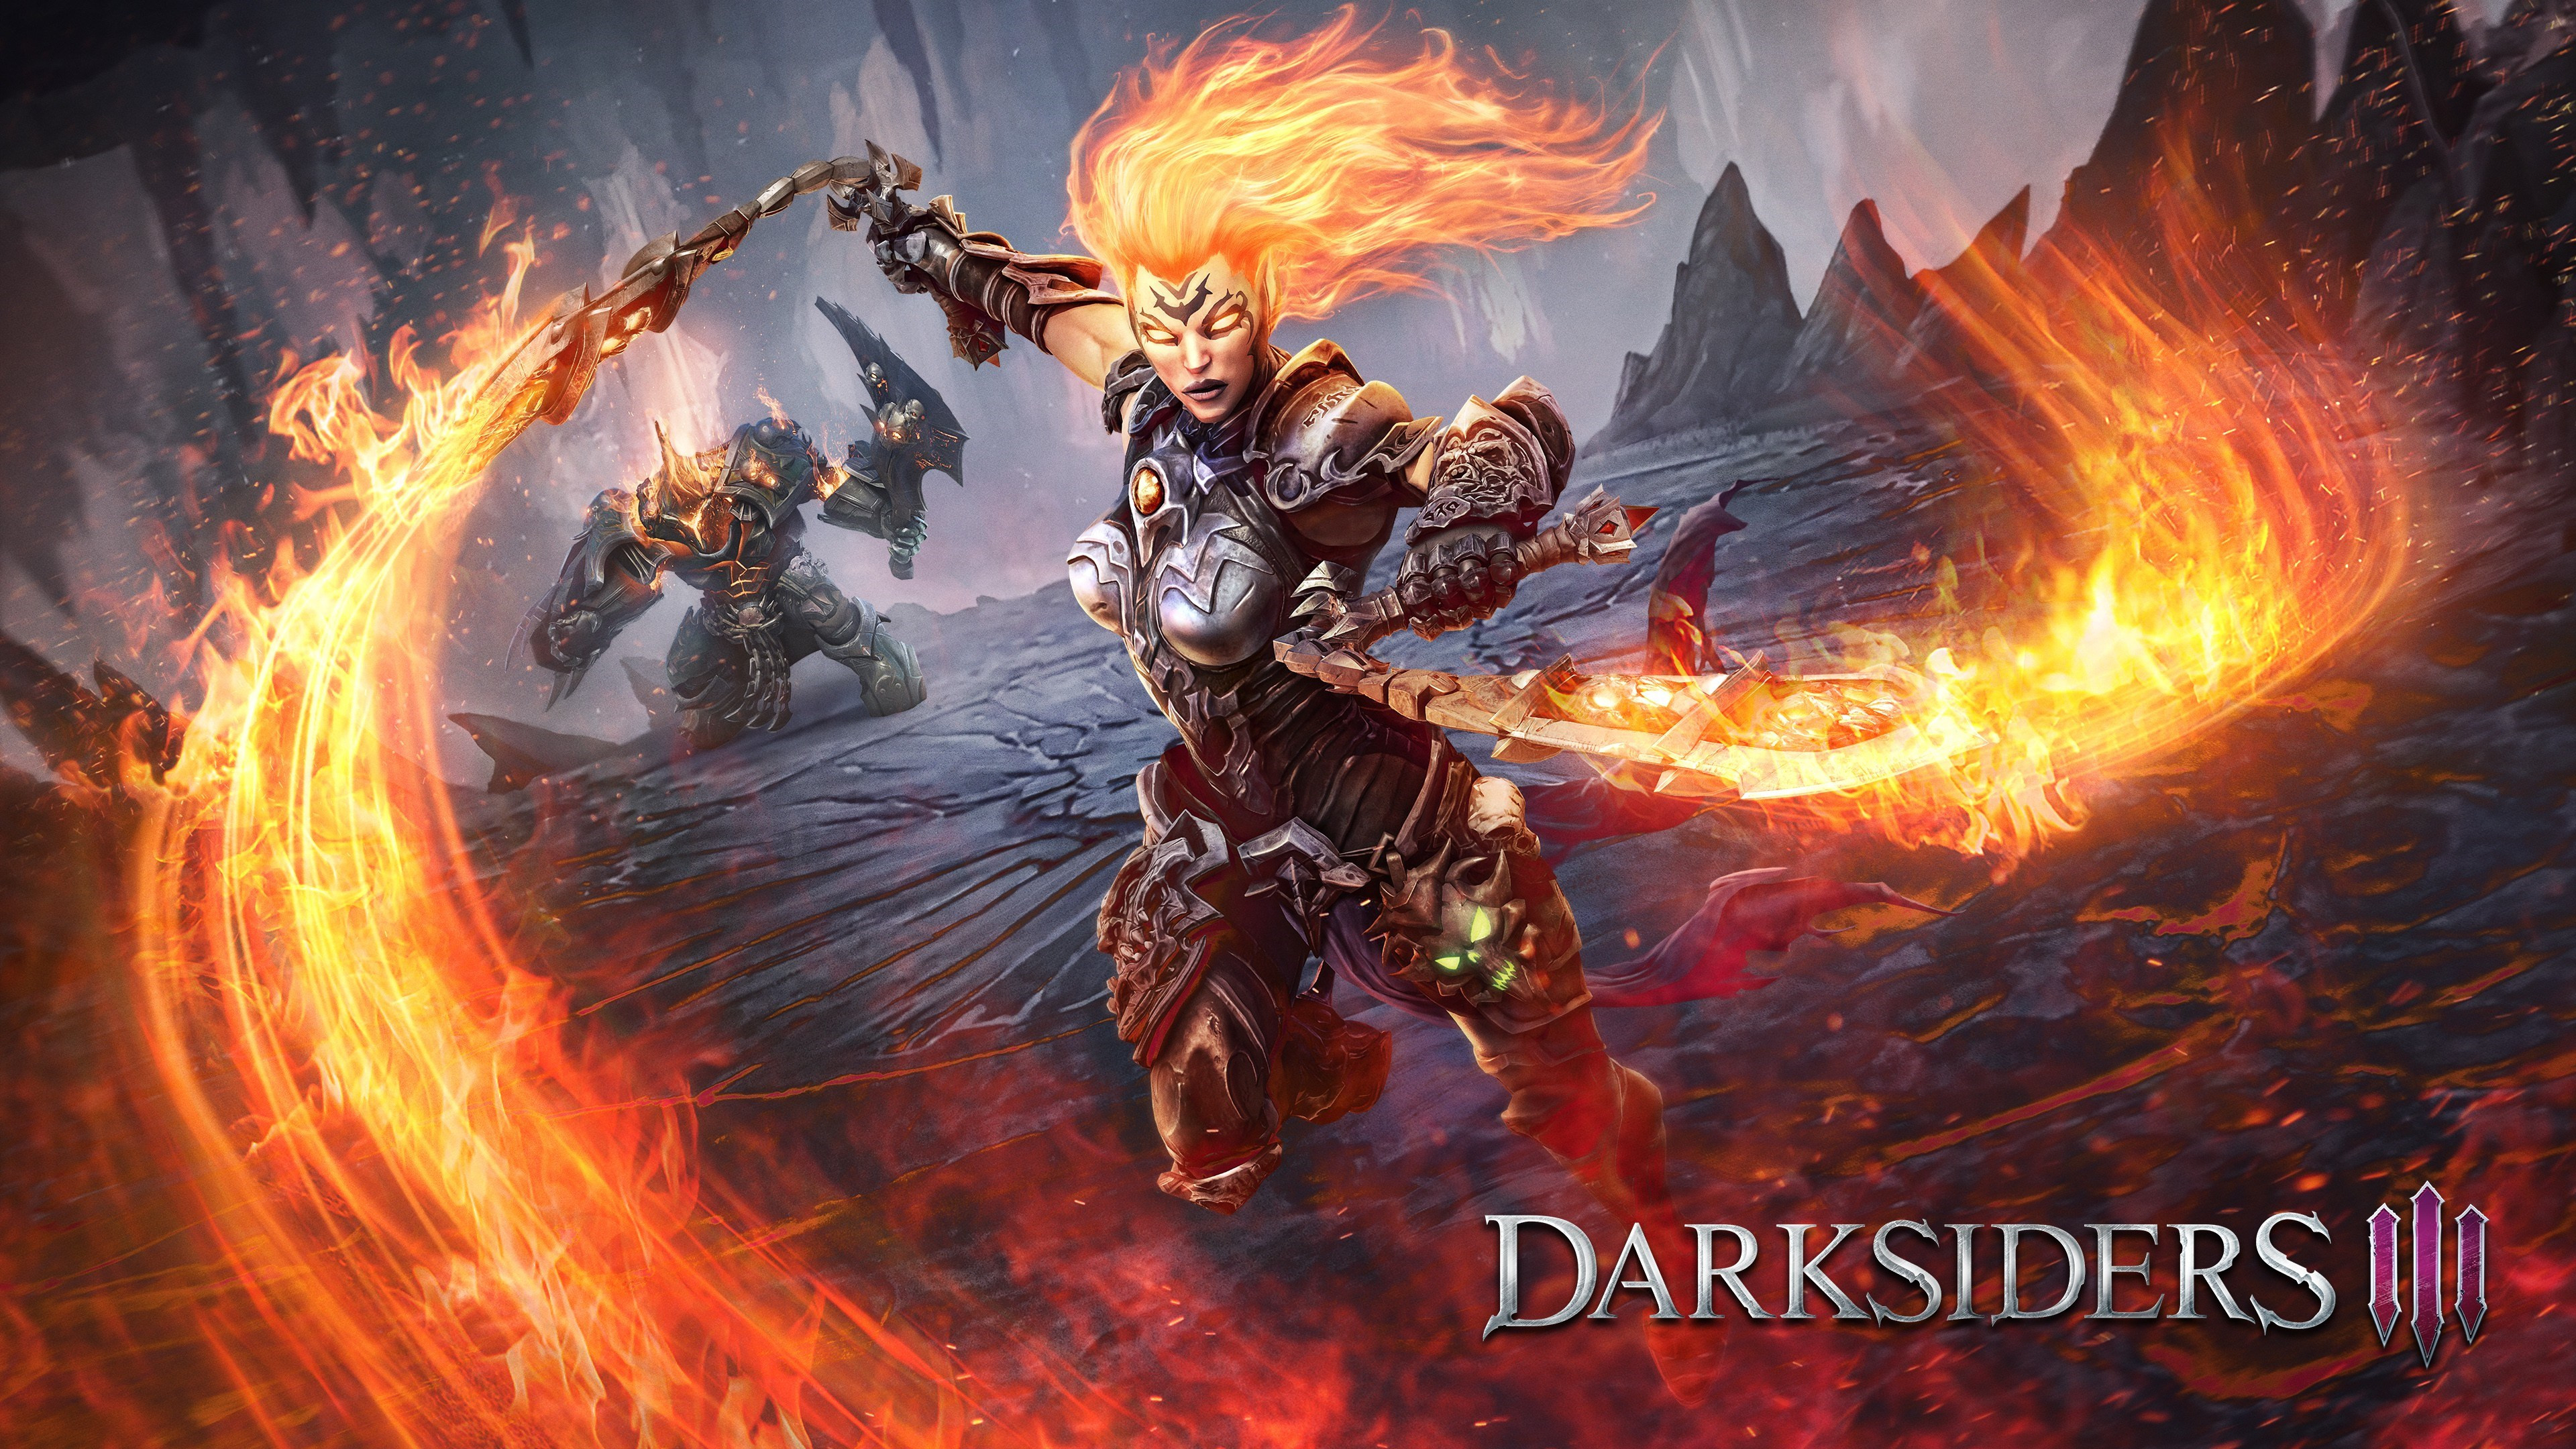 Darksiders III wallpaper 3840x2160